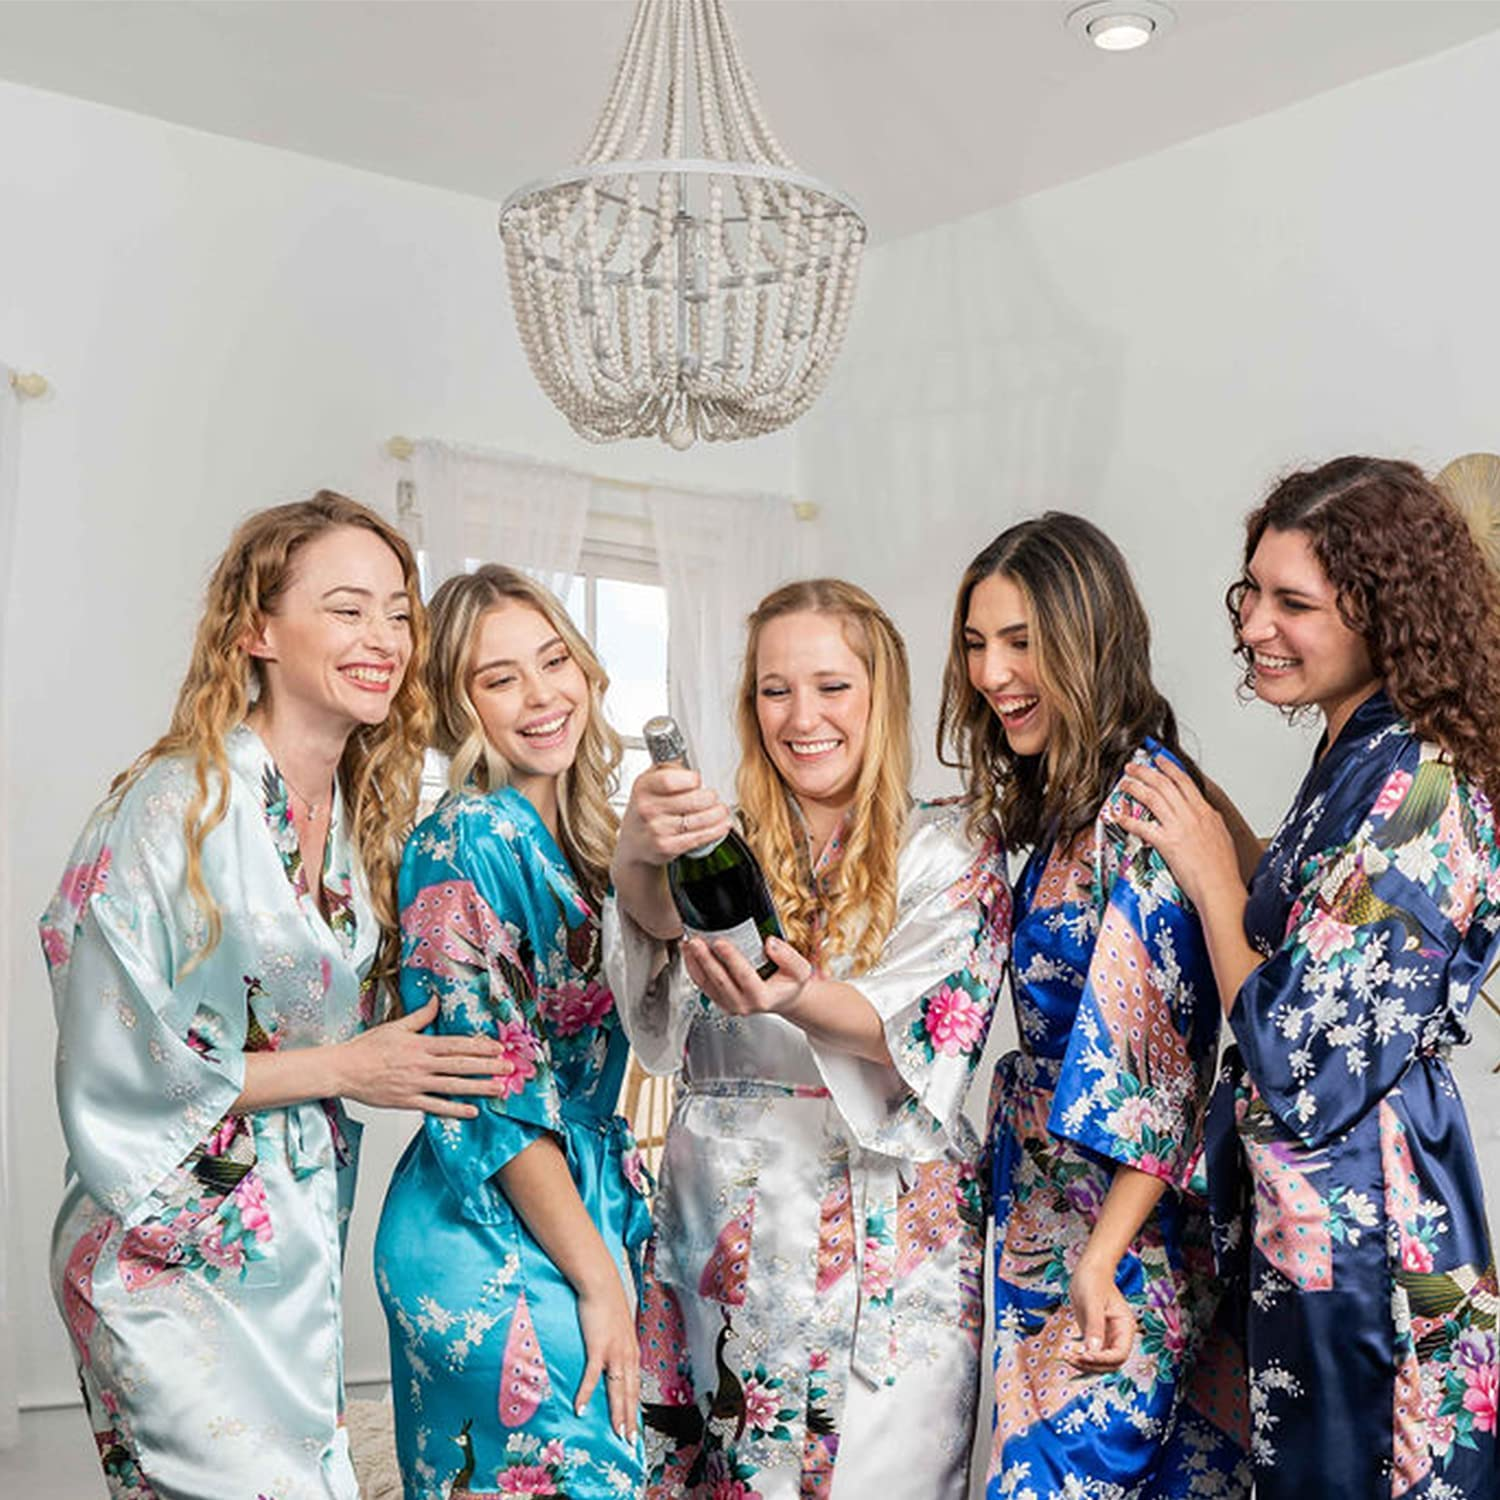 Floral Bridal Party Bride & Bridesmaid Robe Sets, Sizes 2 to 18, Mid Length